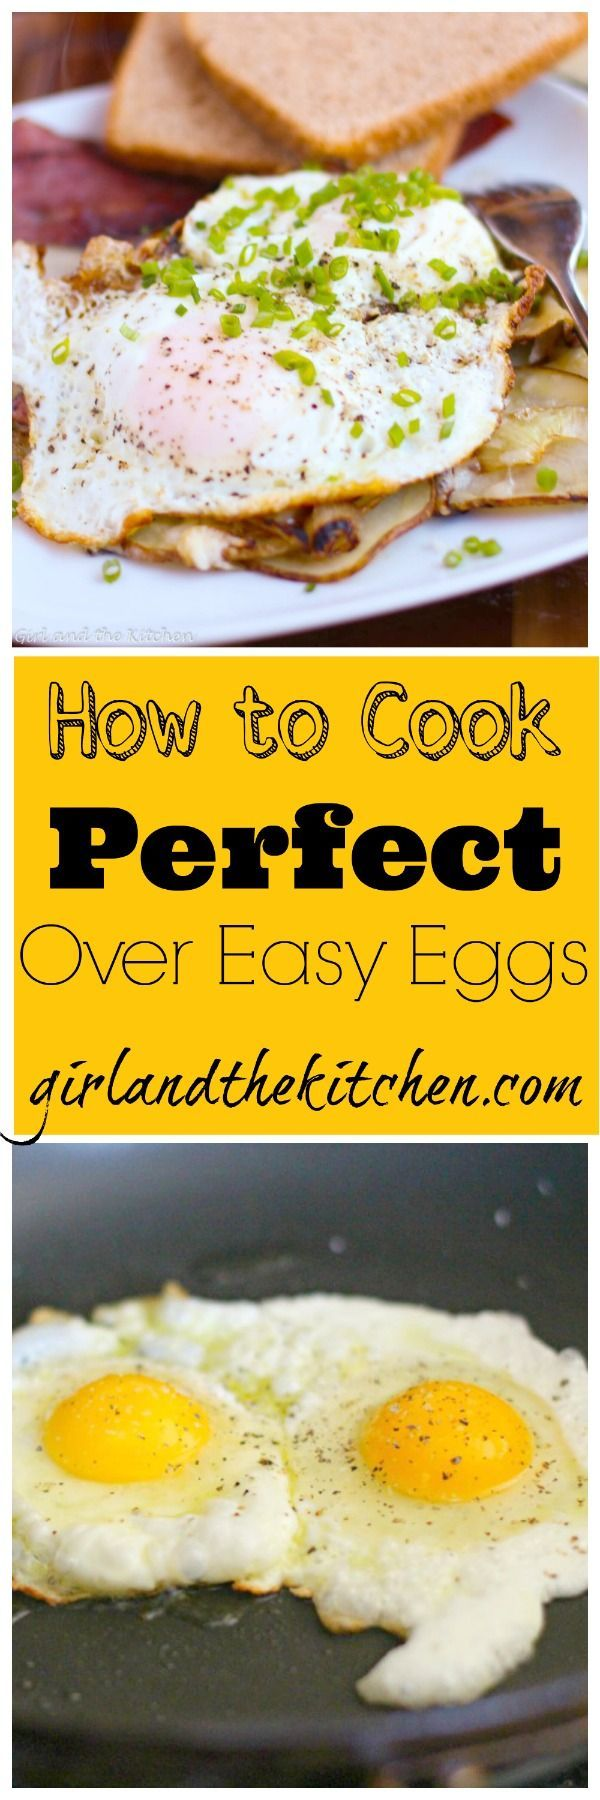 how to make over easy eggs without flipping